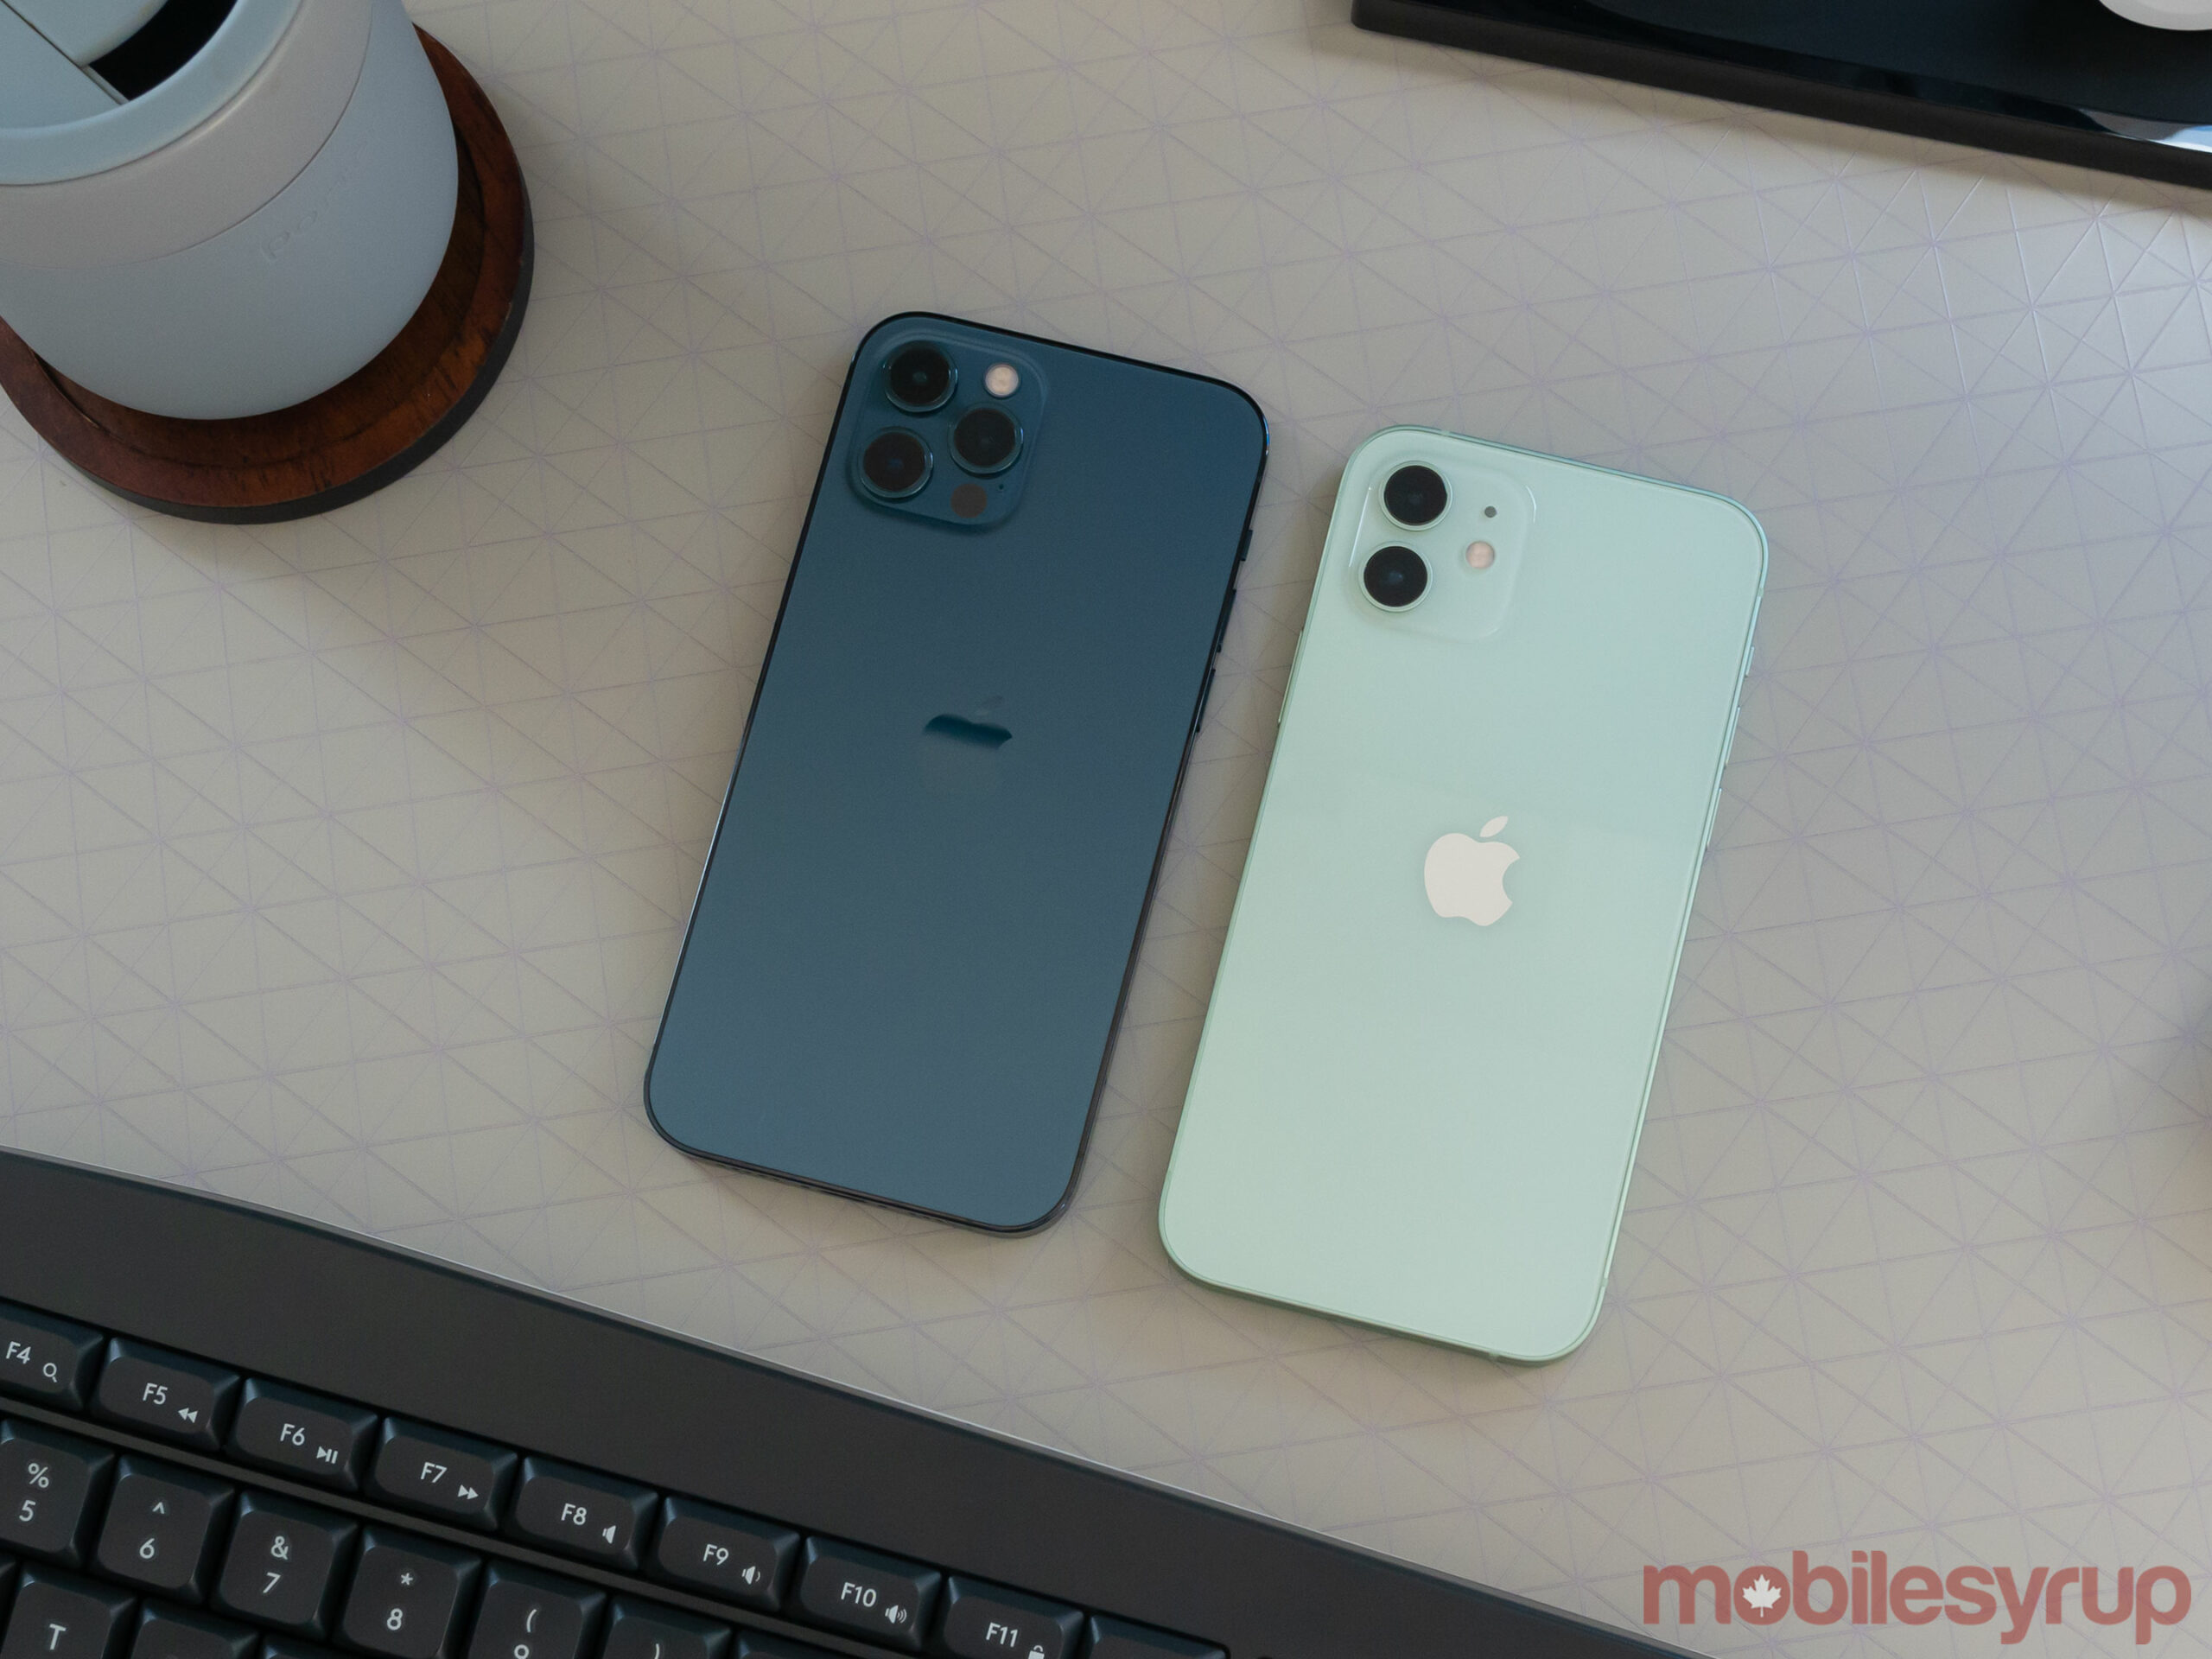 iPhone 12 Pro and iPhone 12